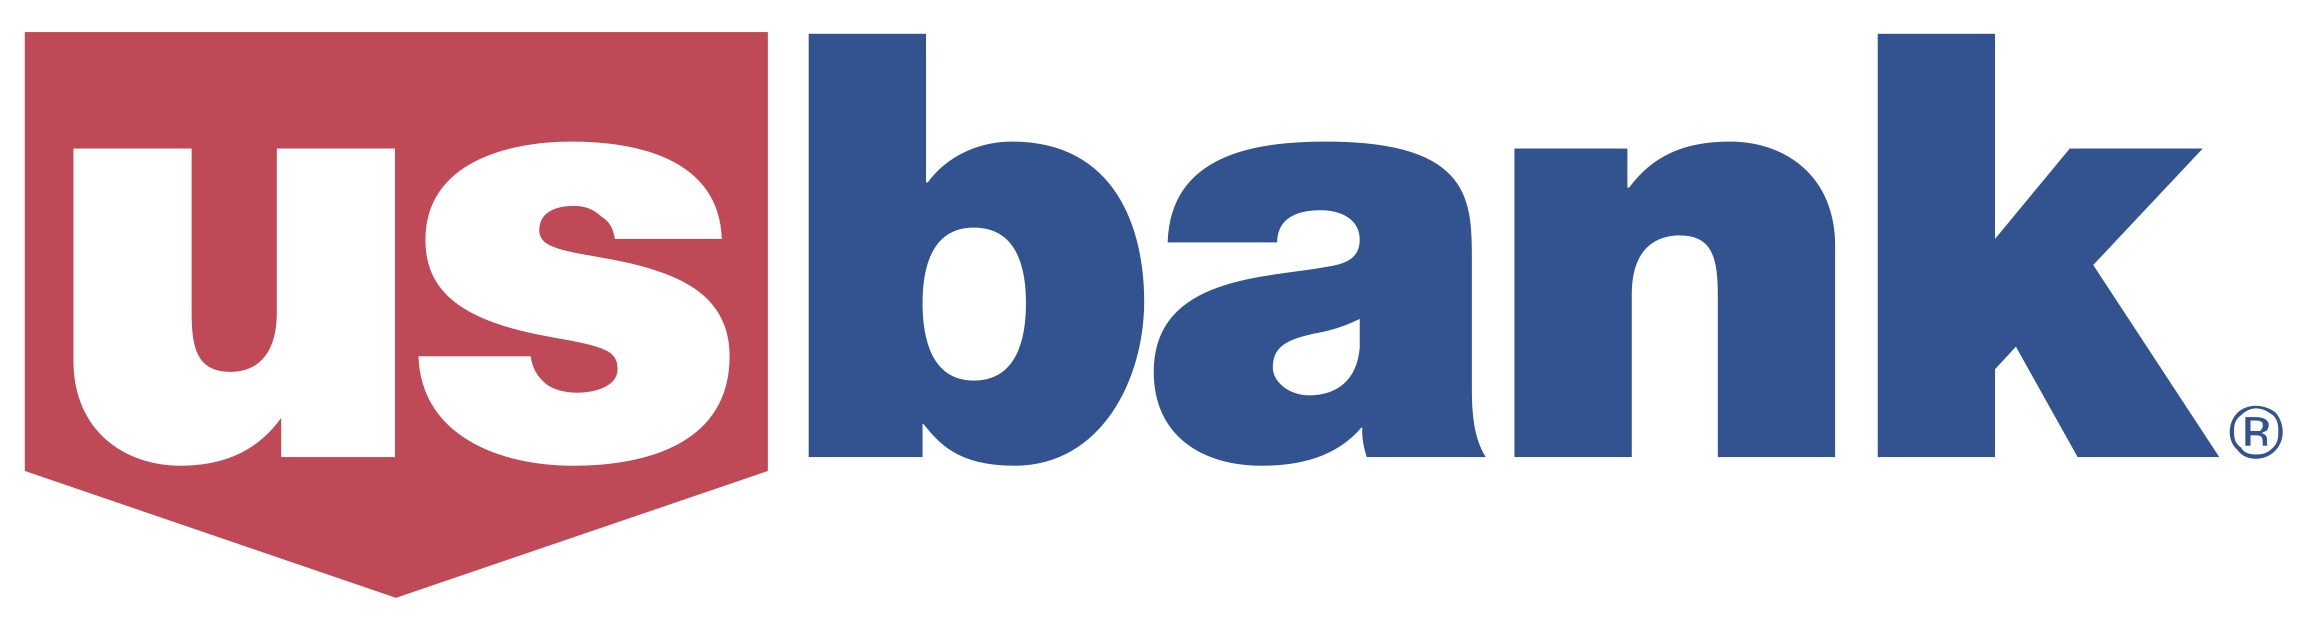 US+Bank+logo.jpg